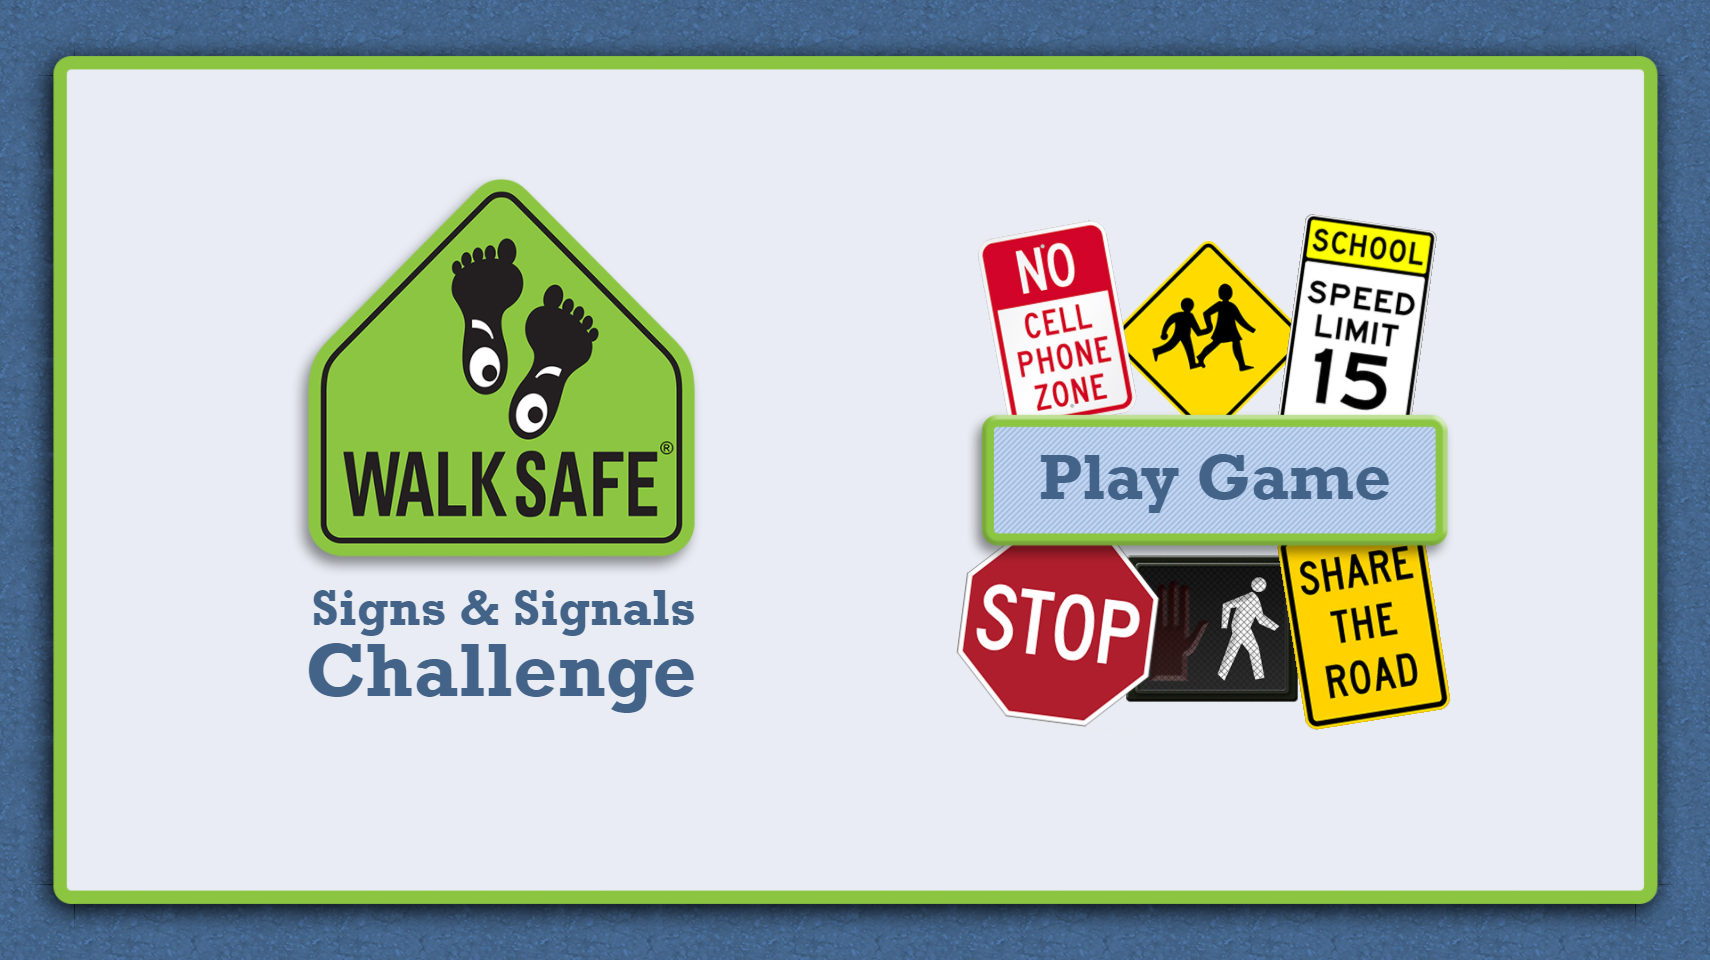 A picture of the loading screen of the Signs and Signals Challenge